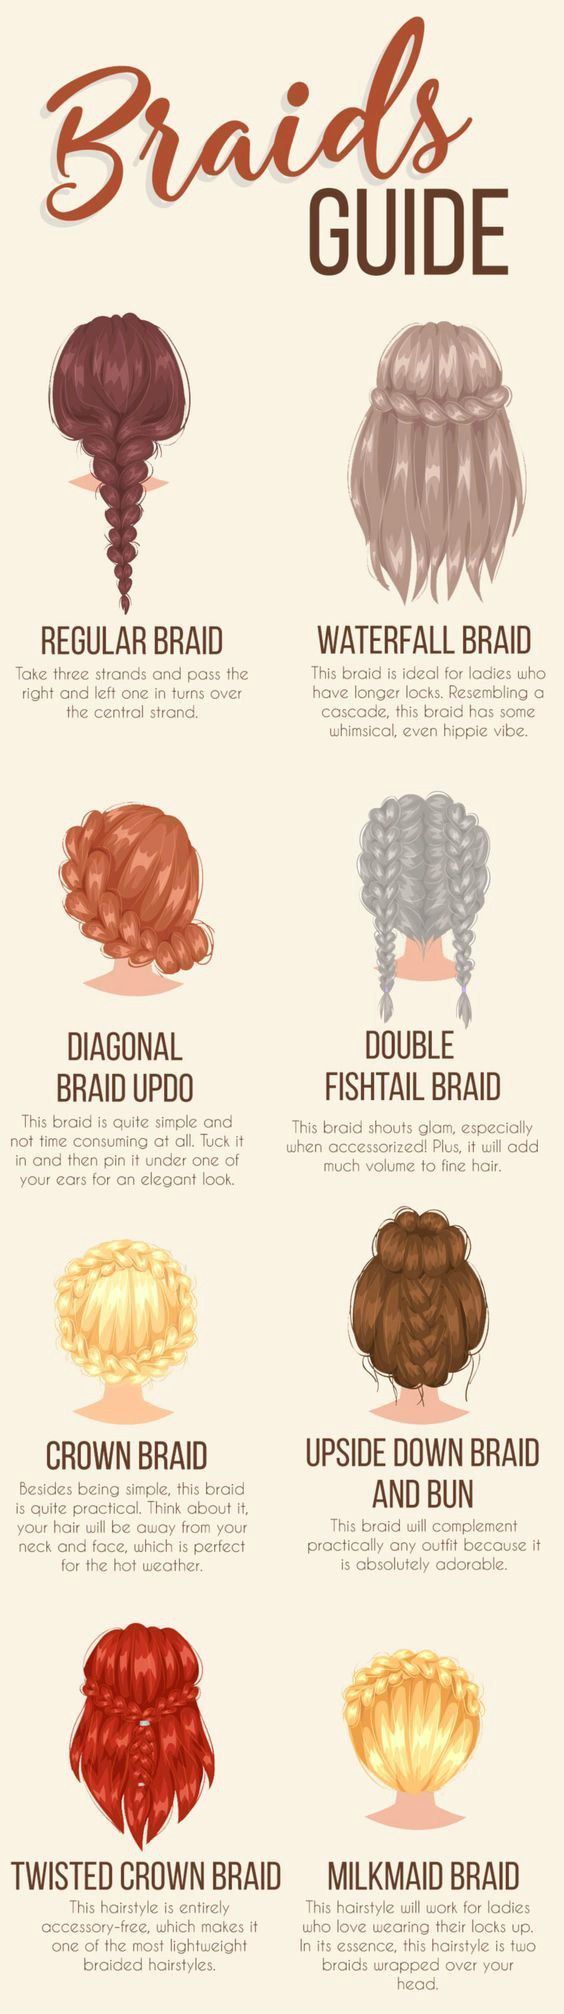 10 Braids Beautyful Quick & Easy Hairstyles for Girls ...